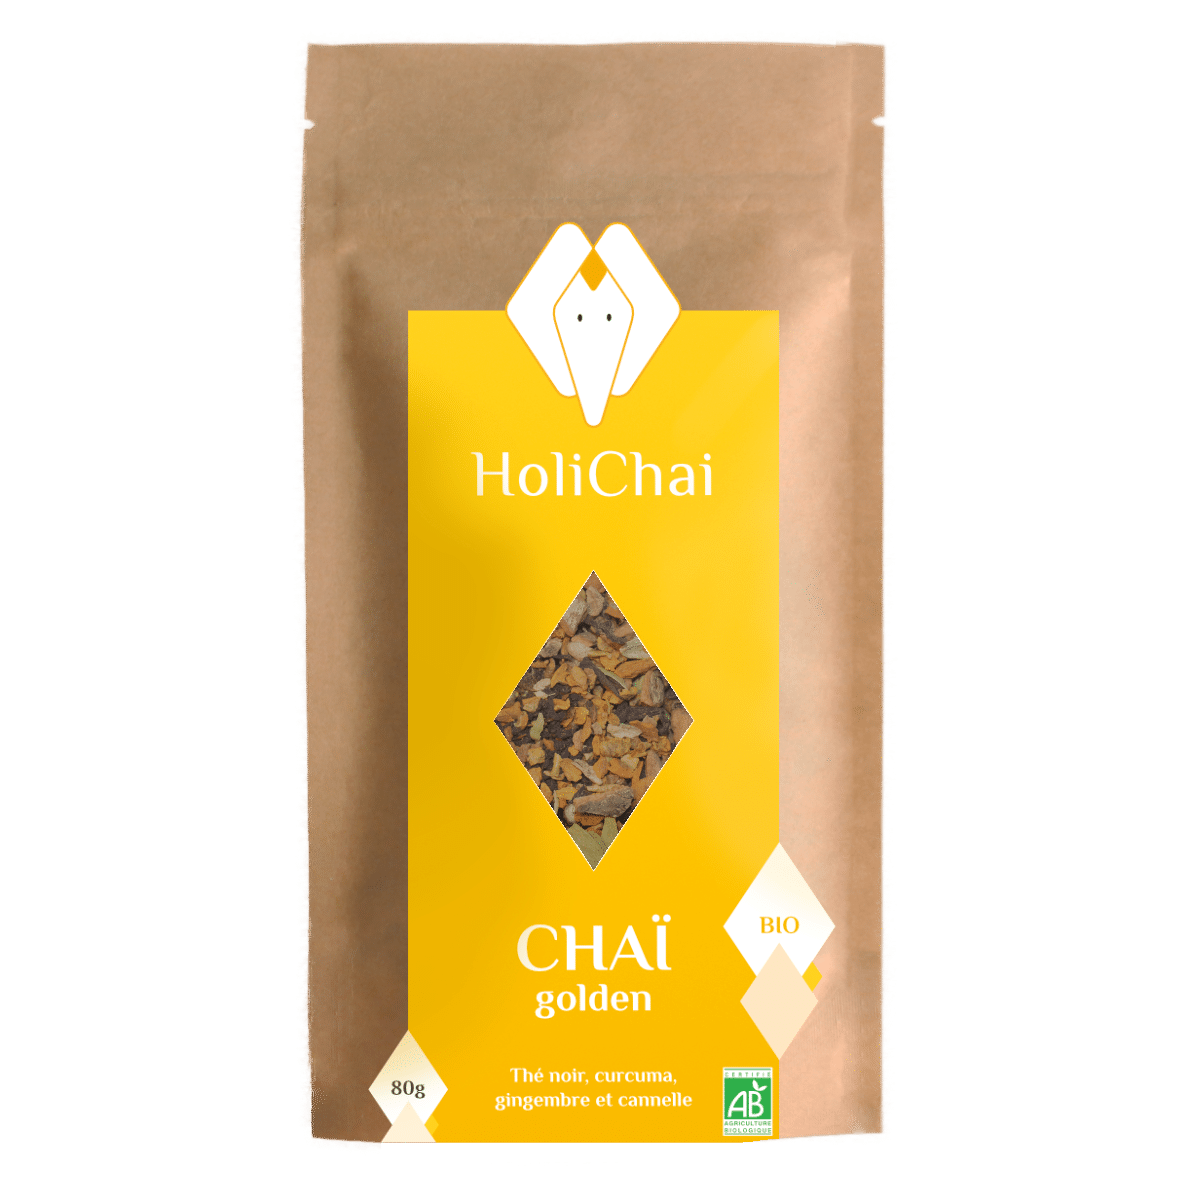 Le Chaï Golden de HoliChai